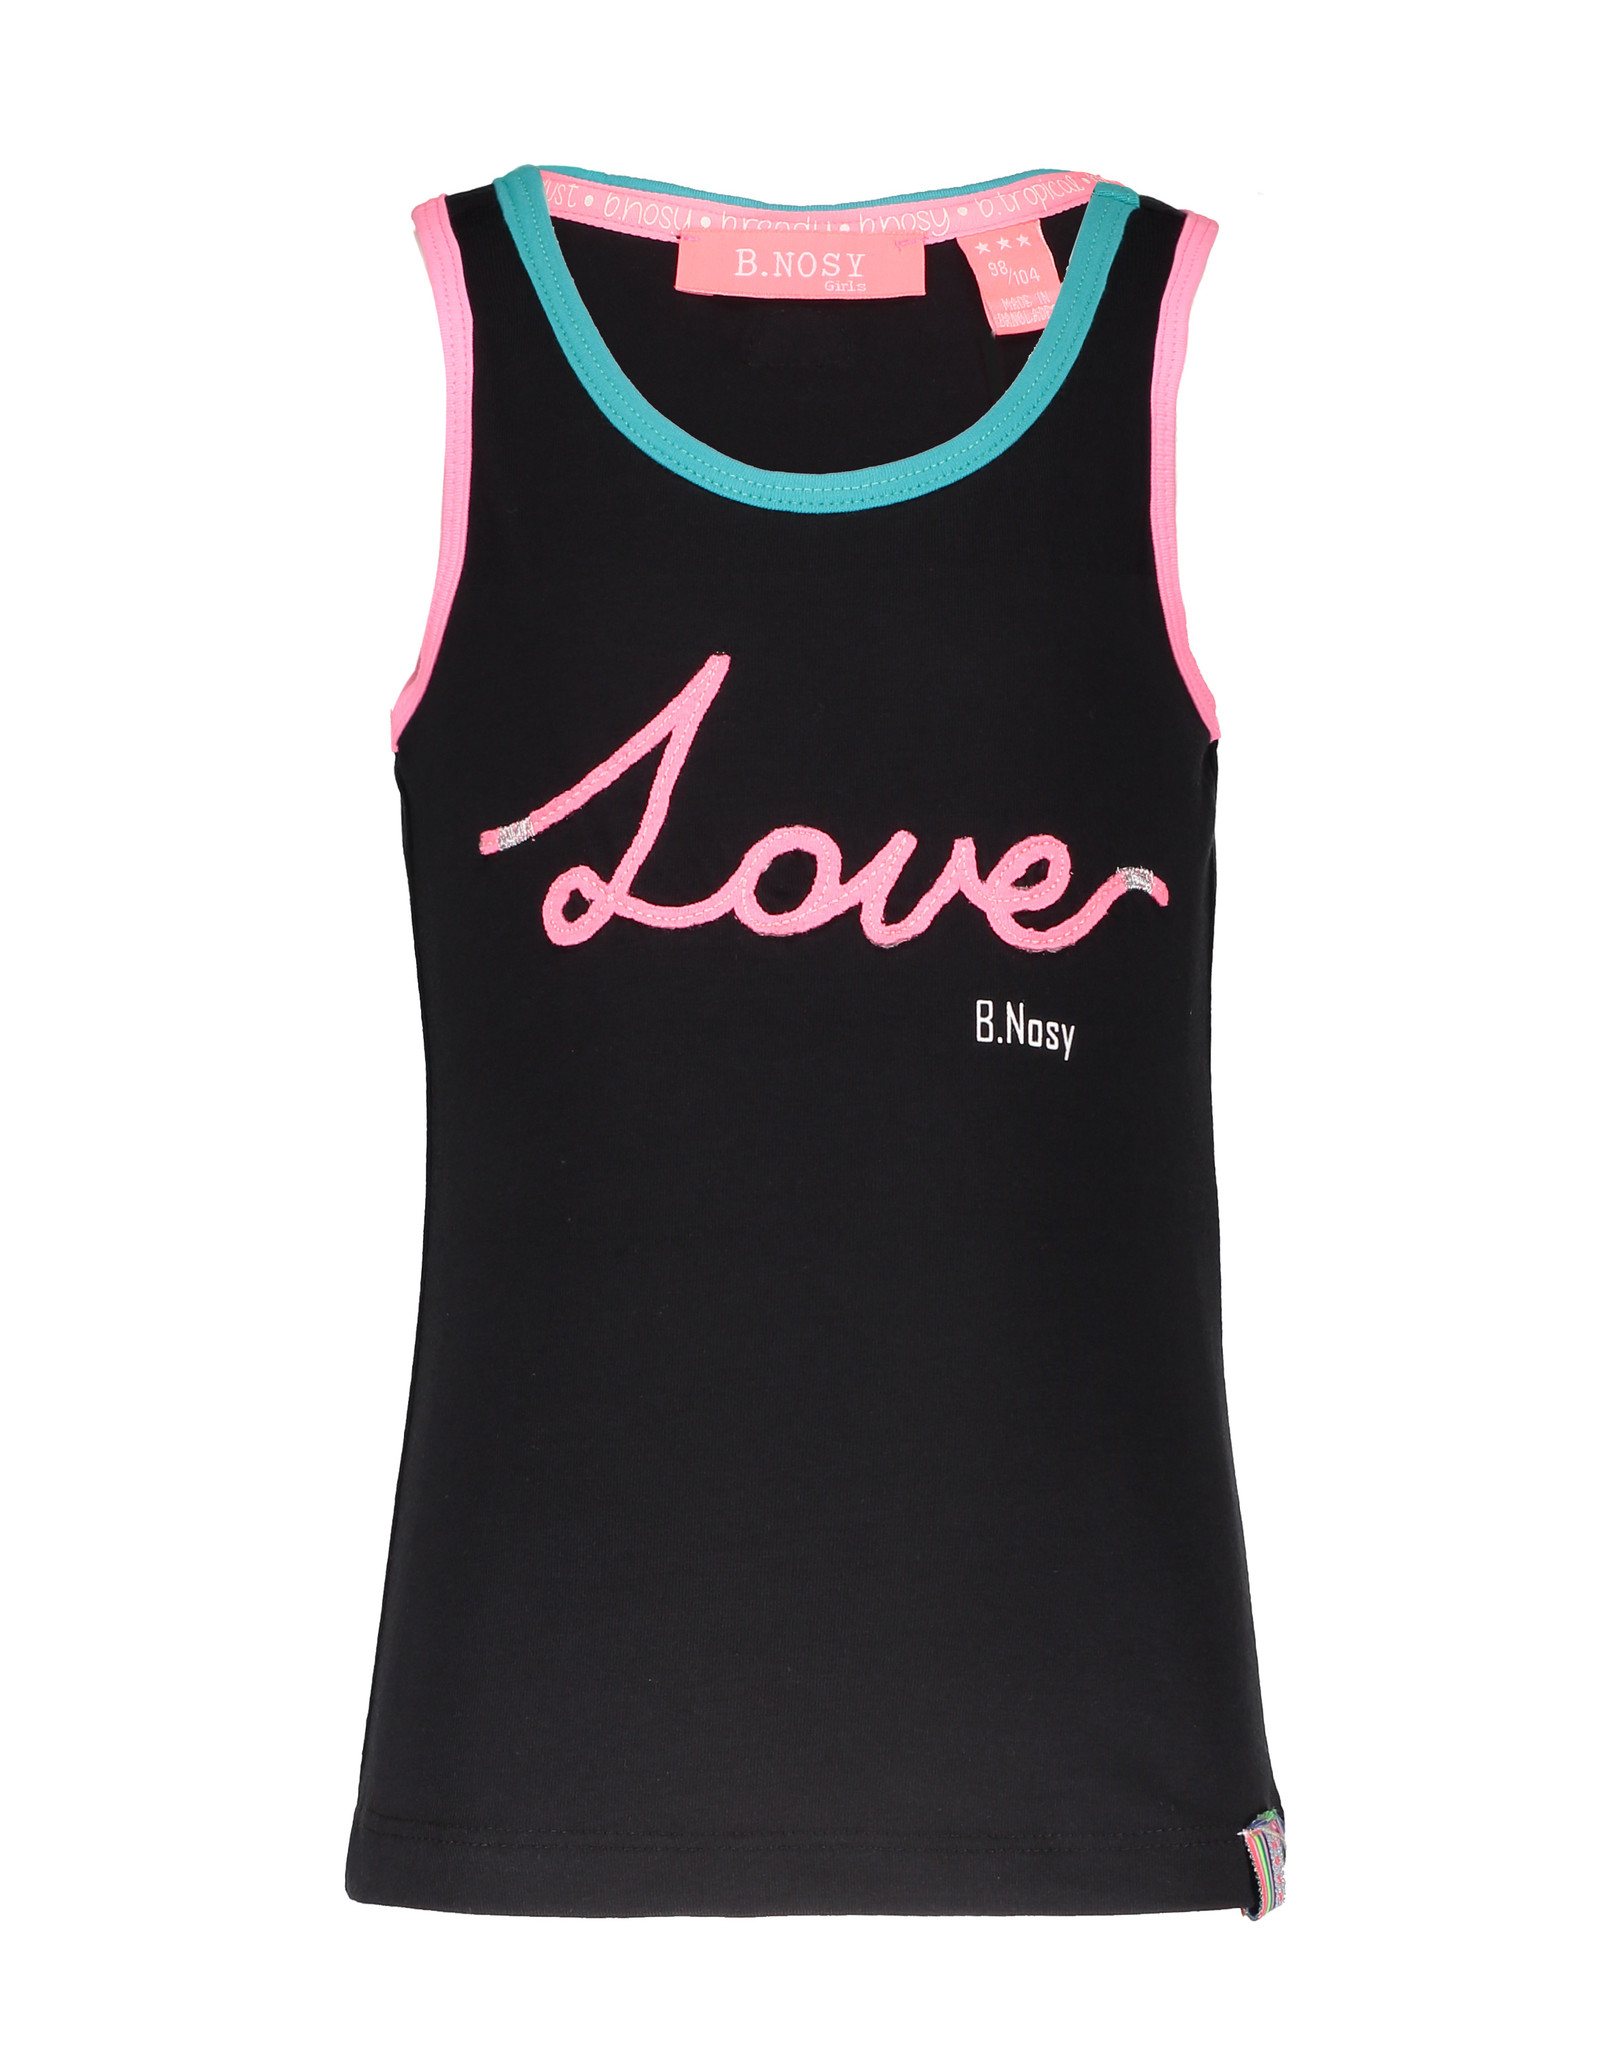 B.Nosy B.Nosy Girls Love Rope Singlet-Black